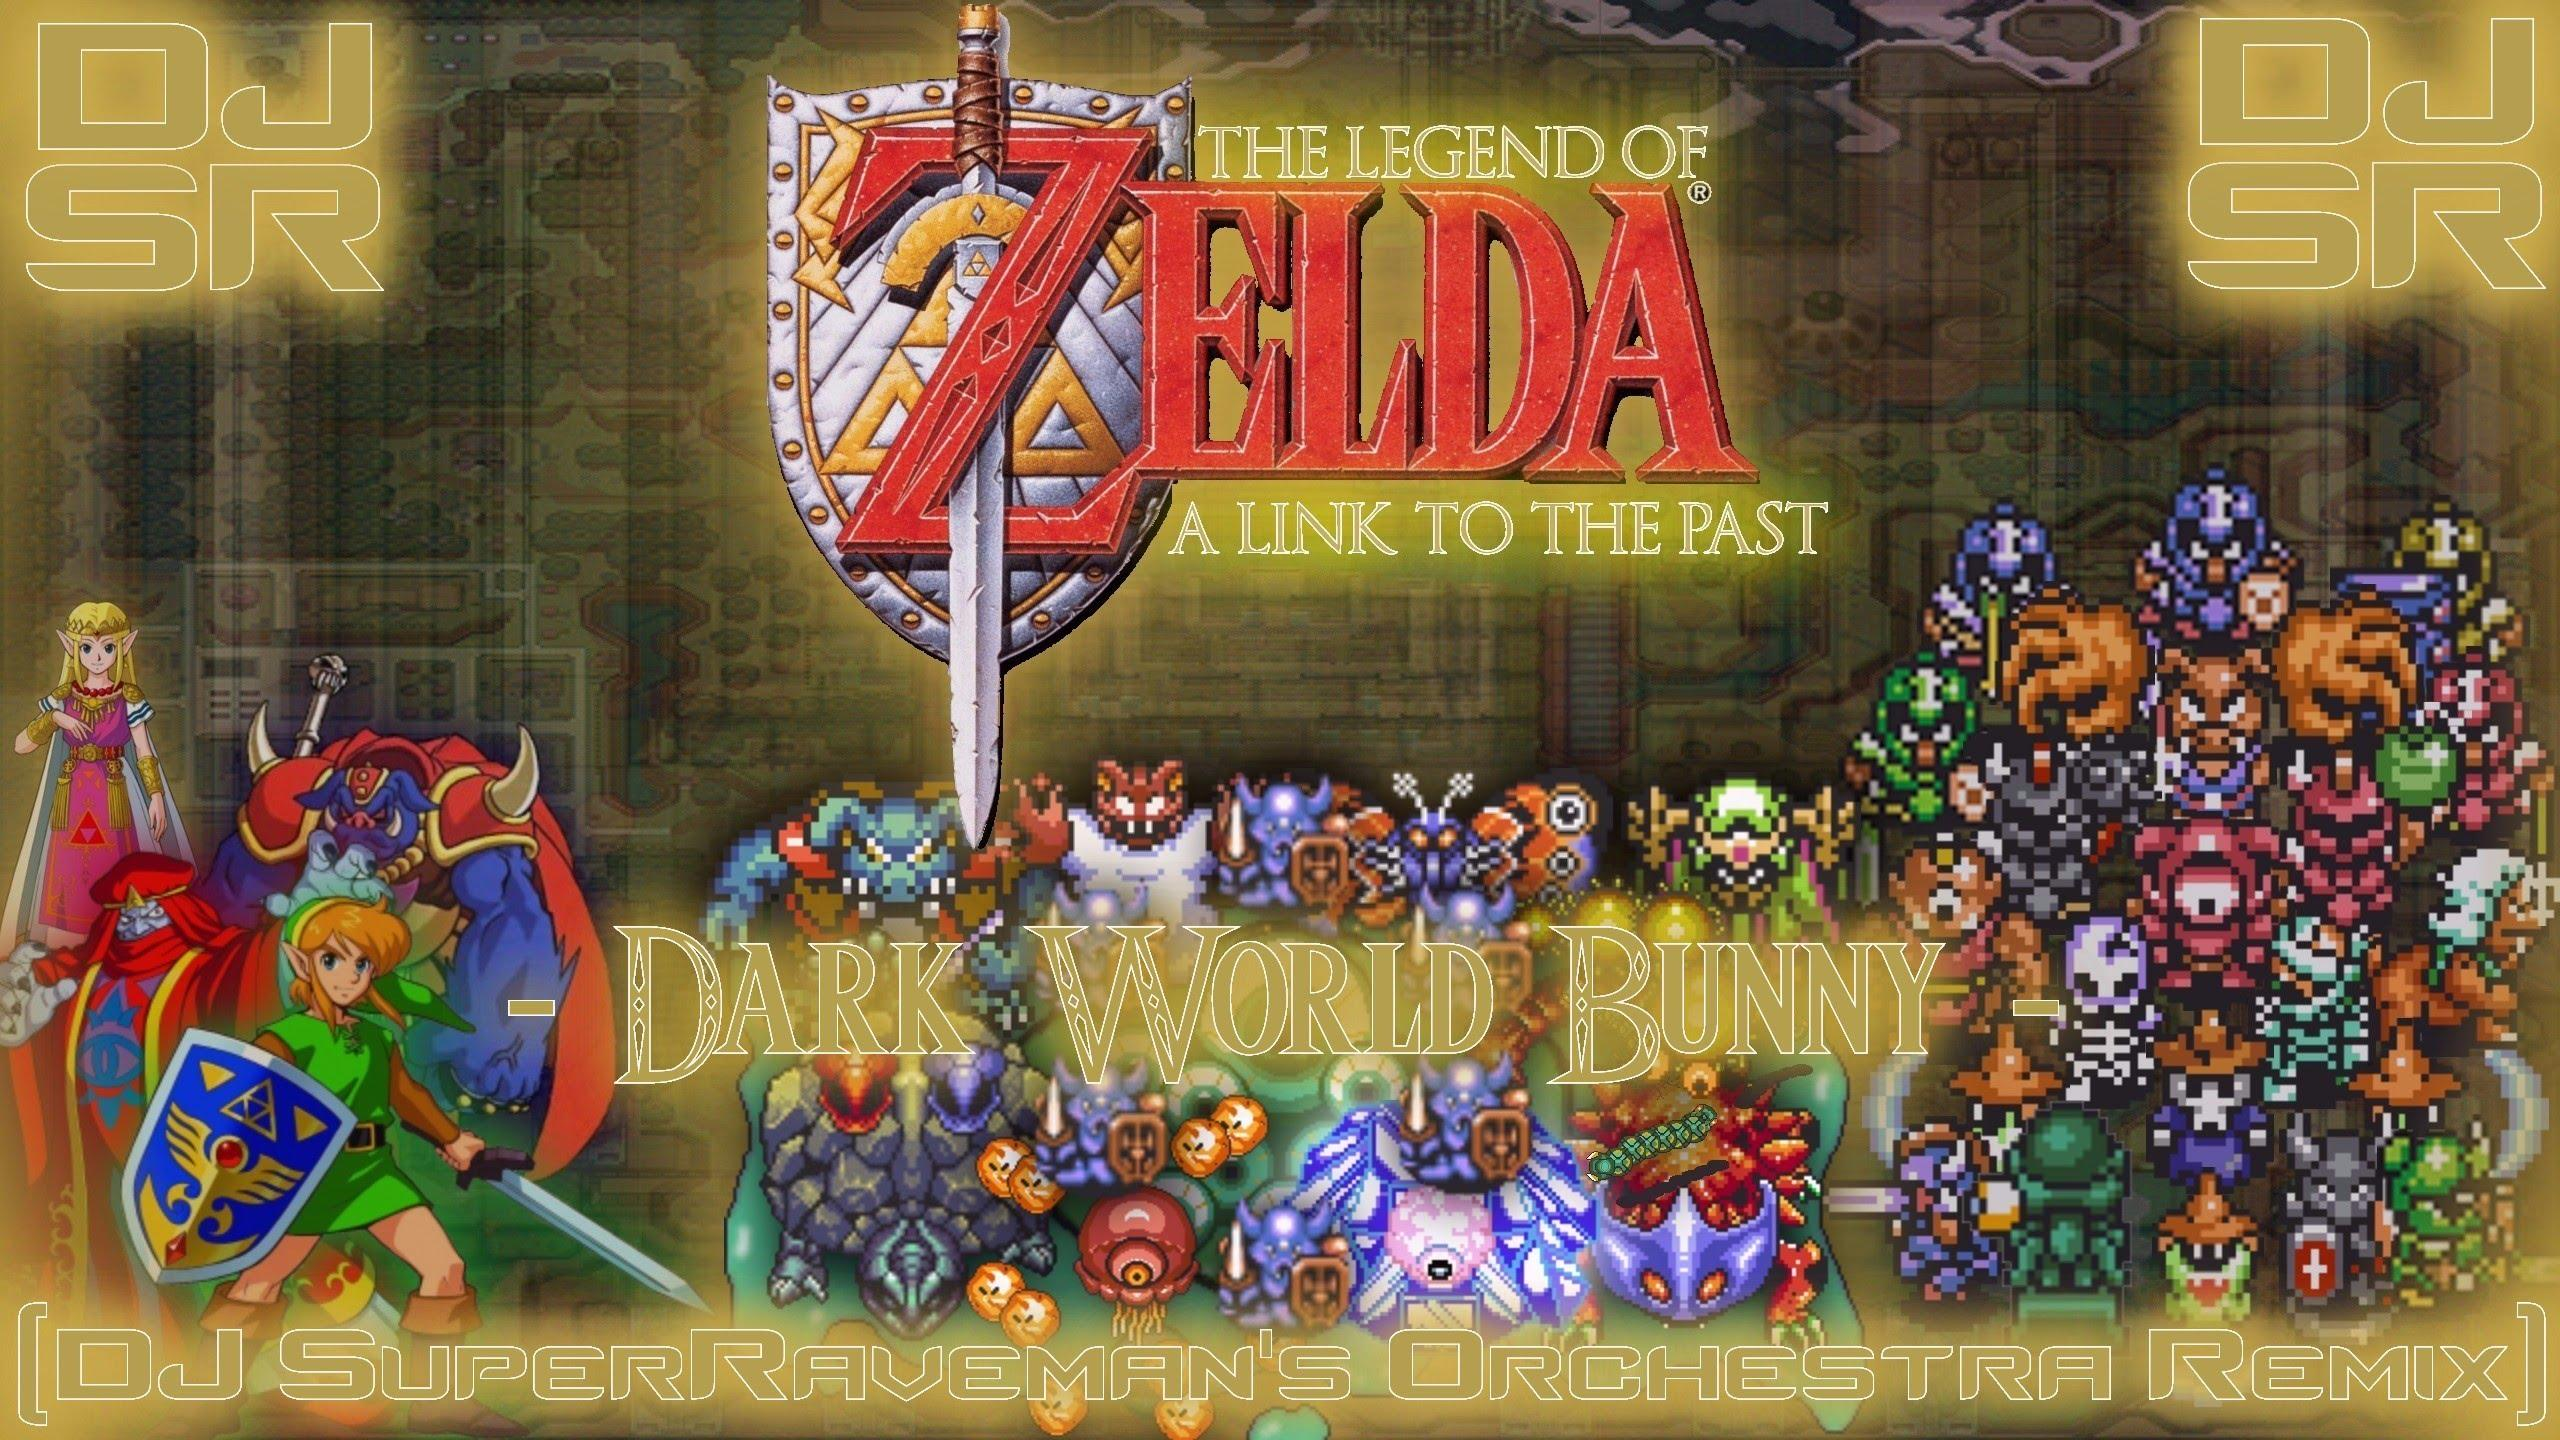 Link To The Past Wallpaper. the legend of zelda a link to the past